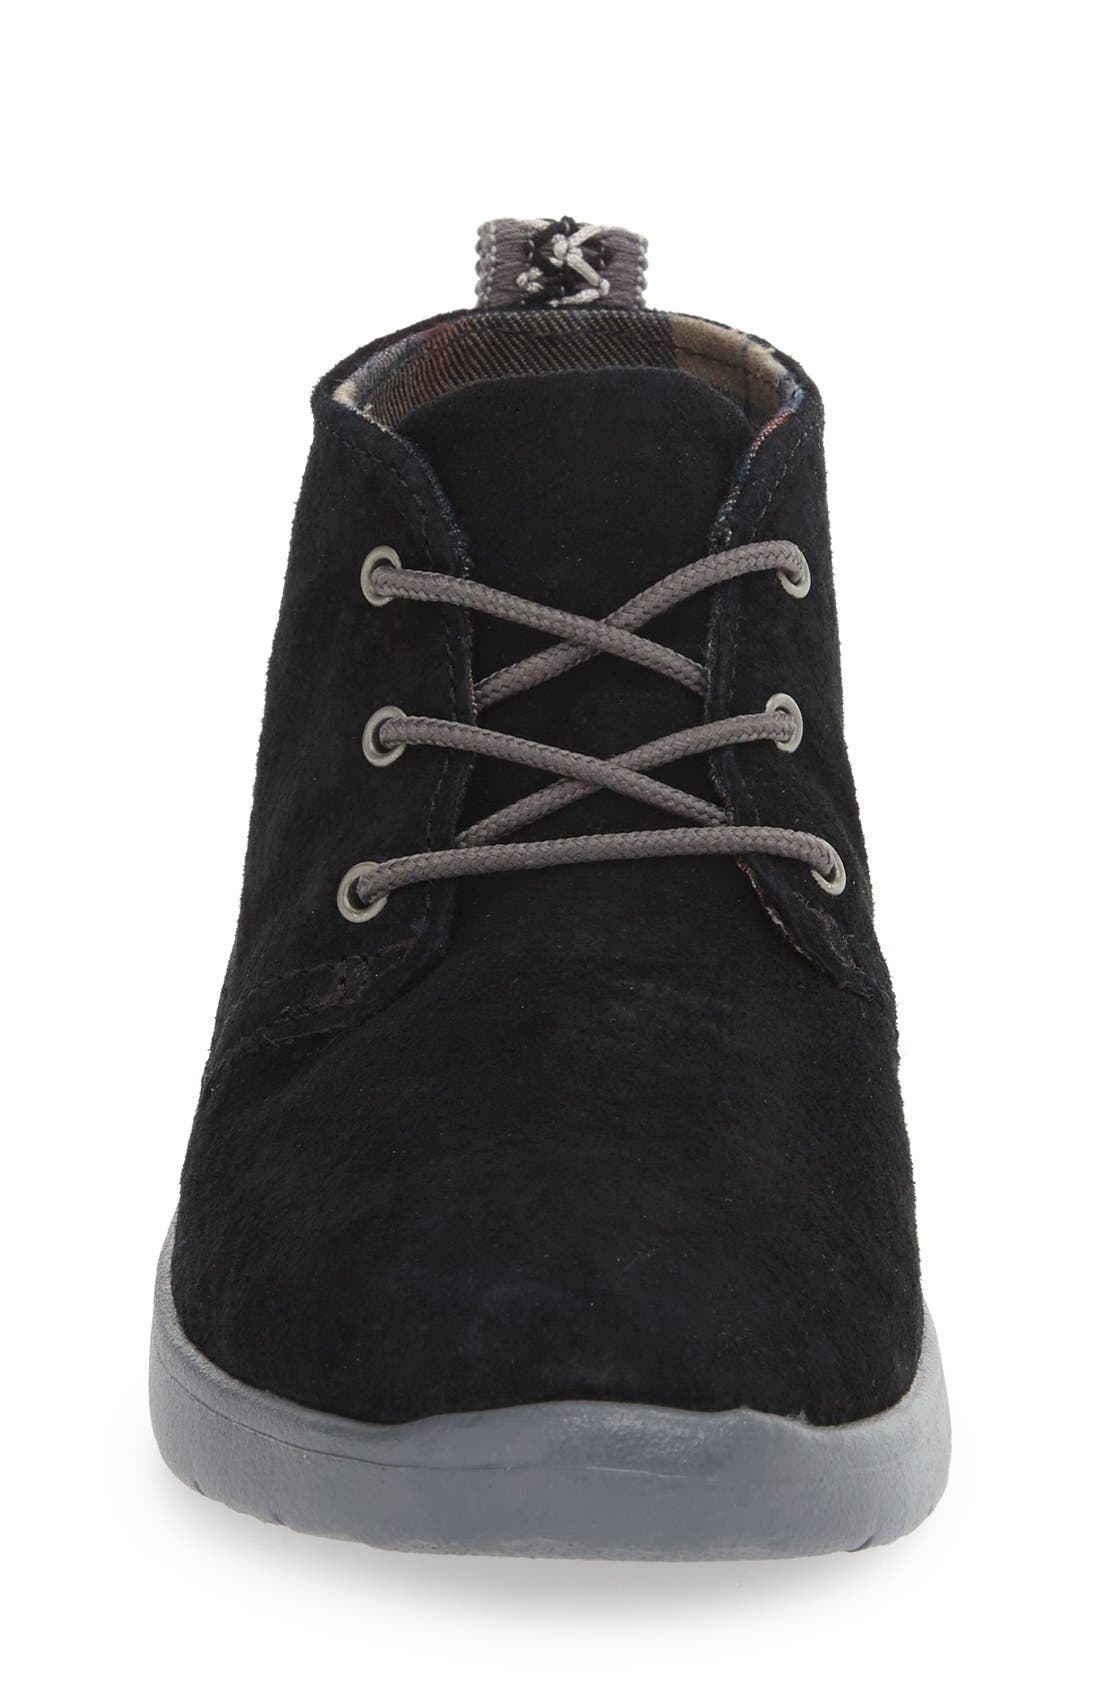 Alternate Image 3  - UGG® Canoe Chukka Sneaker (Toddler, Little Kid & Big Kid)